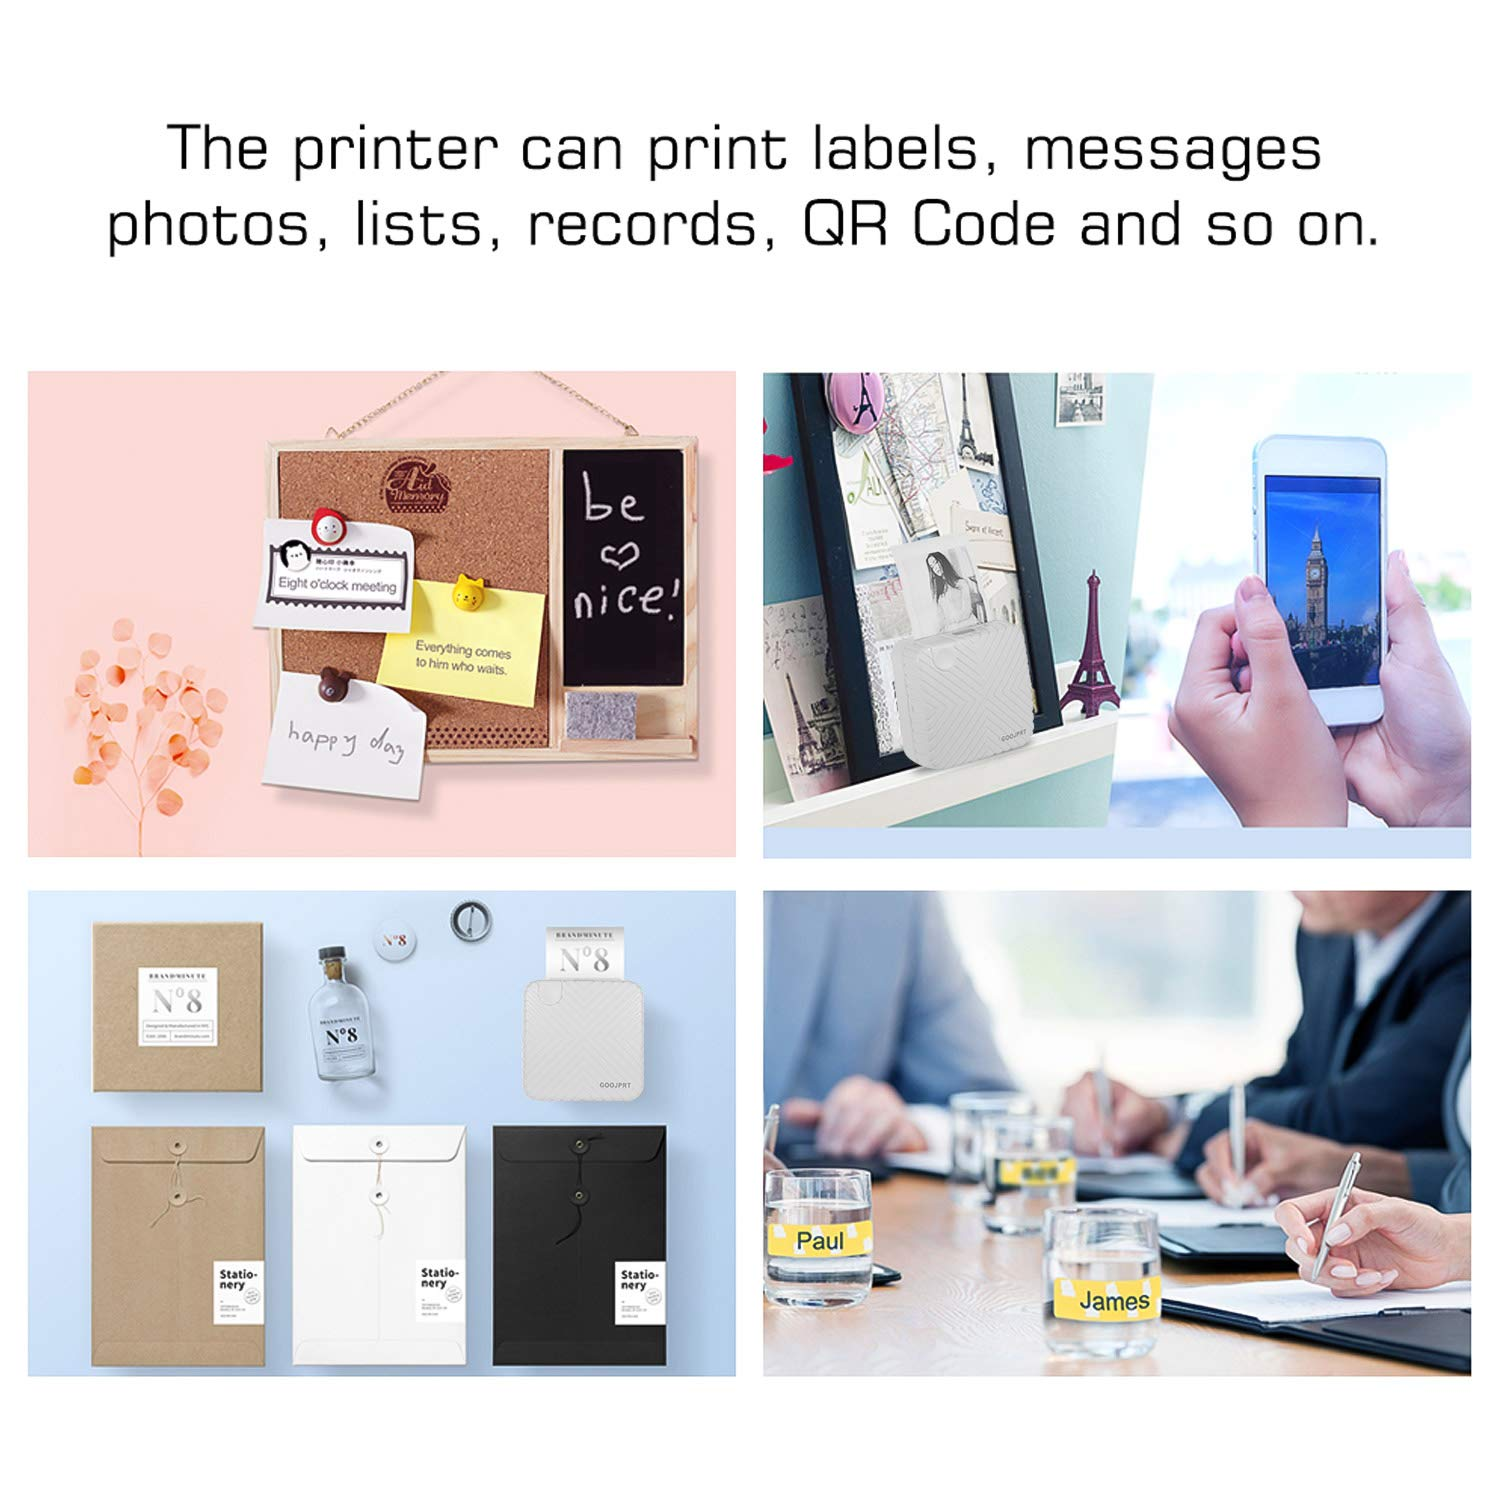 Aibecy Pocket Mini Printer Thermal Mobile Printer Receipt Label Sticker Memo Photo Picture Instant Portable BT Wireless Compatible with Android iOS Window GOOJPRT P6